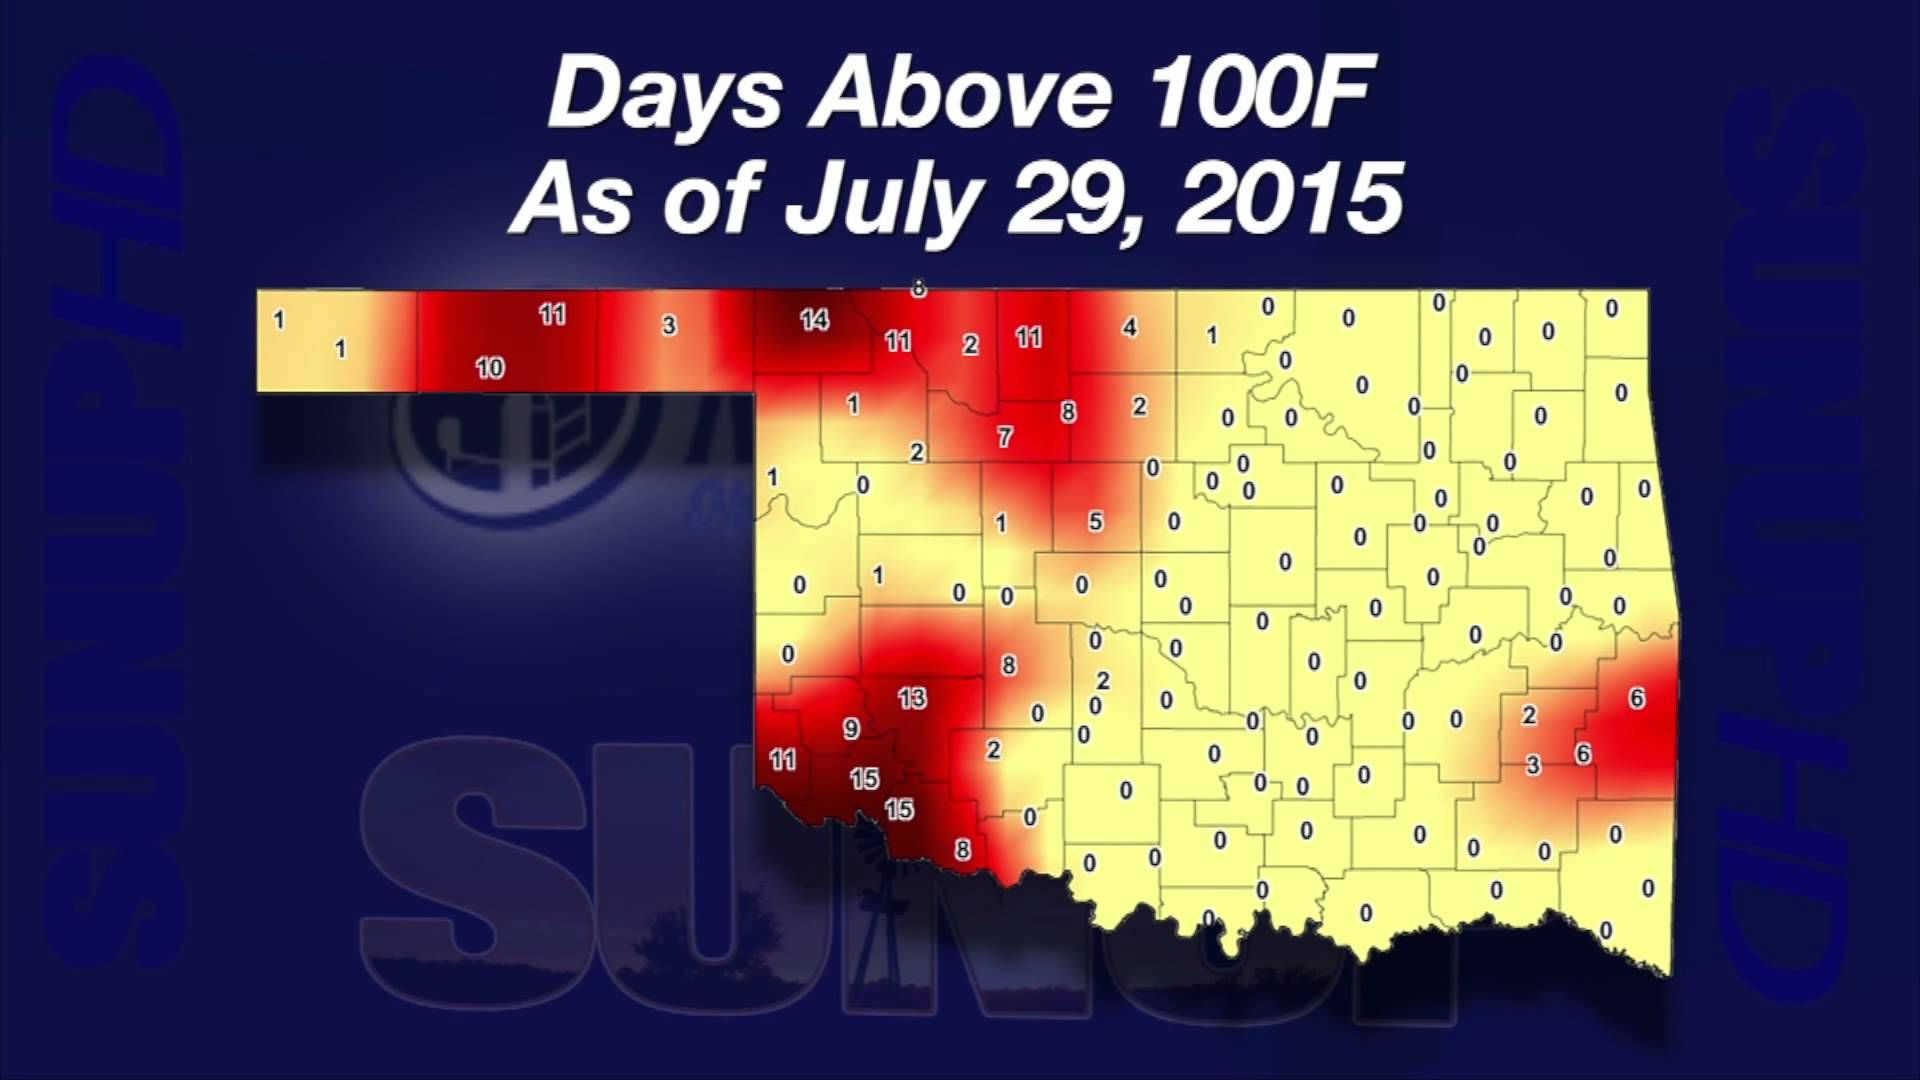 Al Sutherland show where temperatures may become dangerous for cattle.